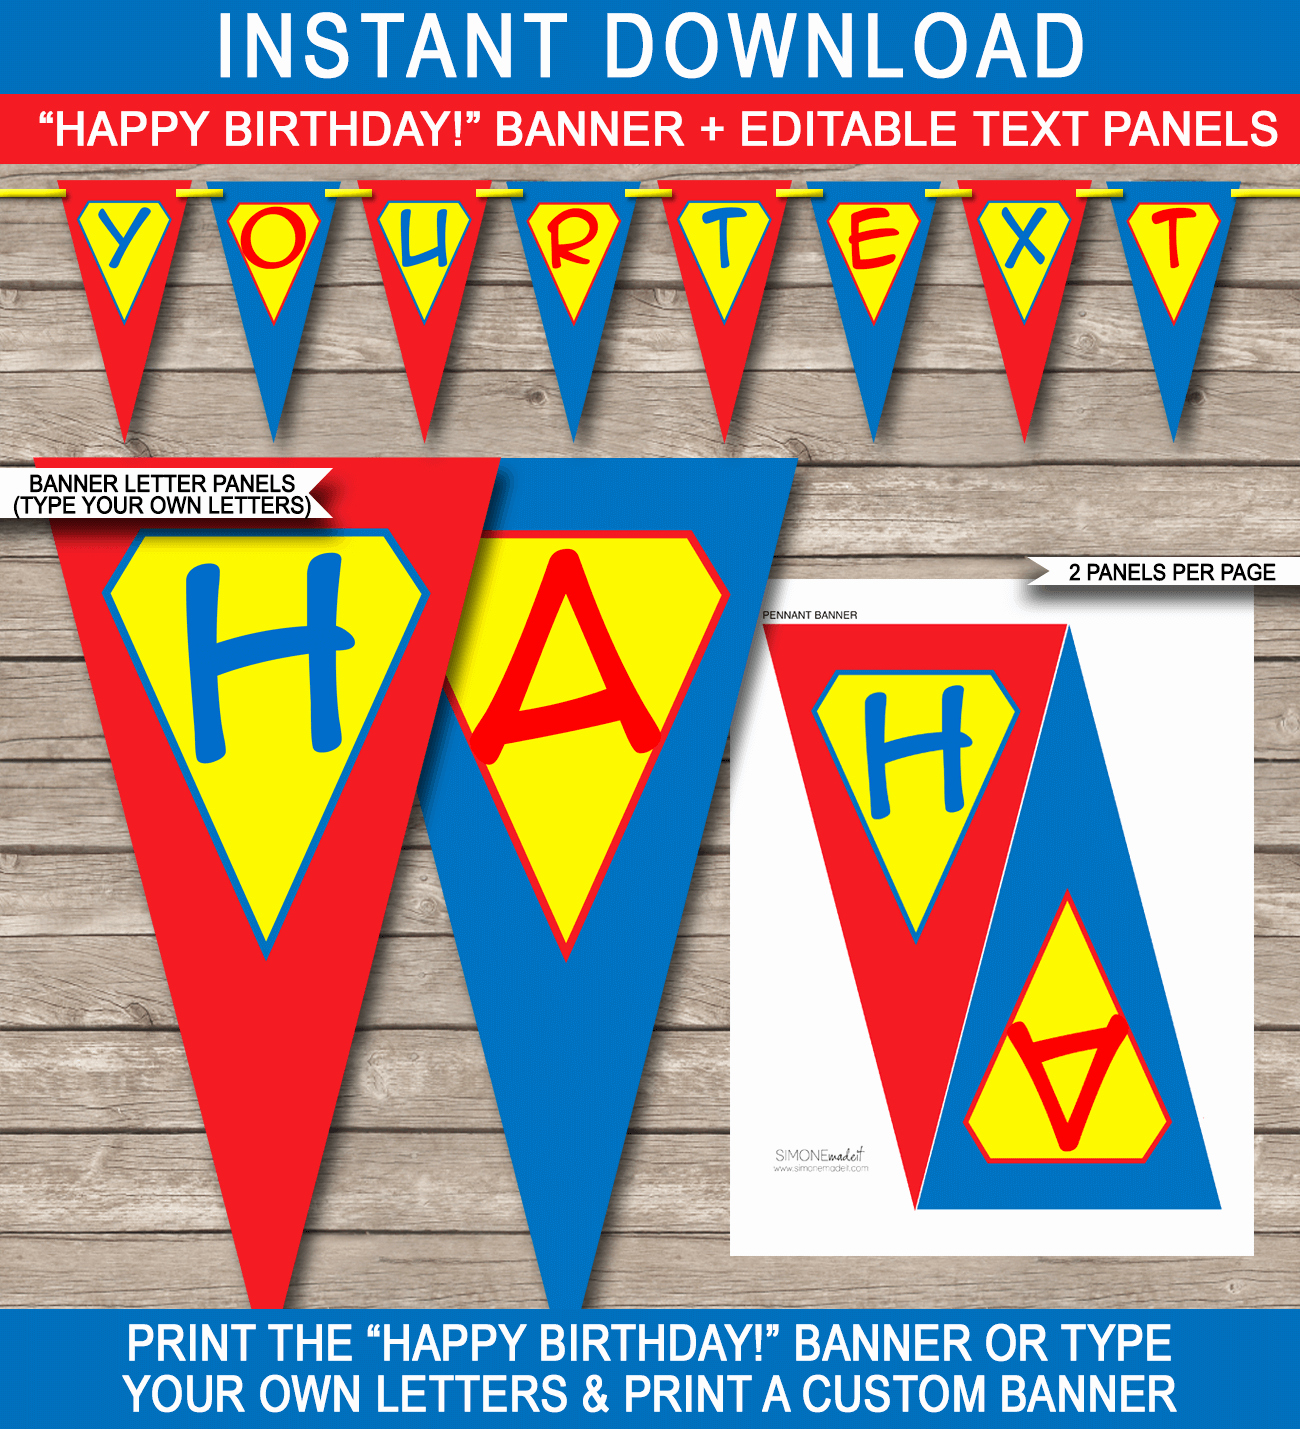 Happy Birthday Banner Print Out Best Of Superhero Party Banner Template